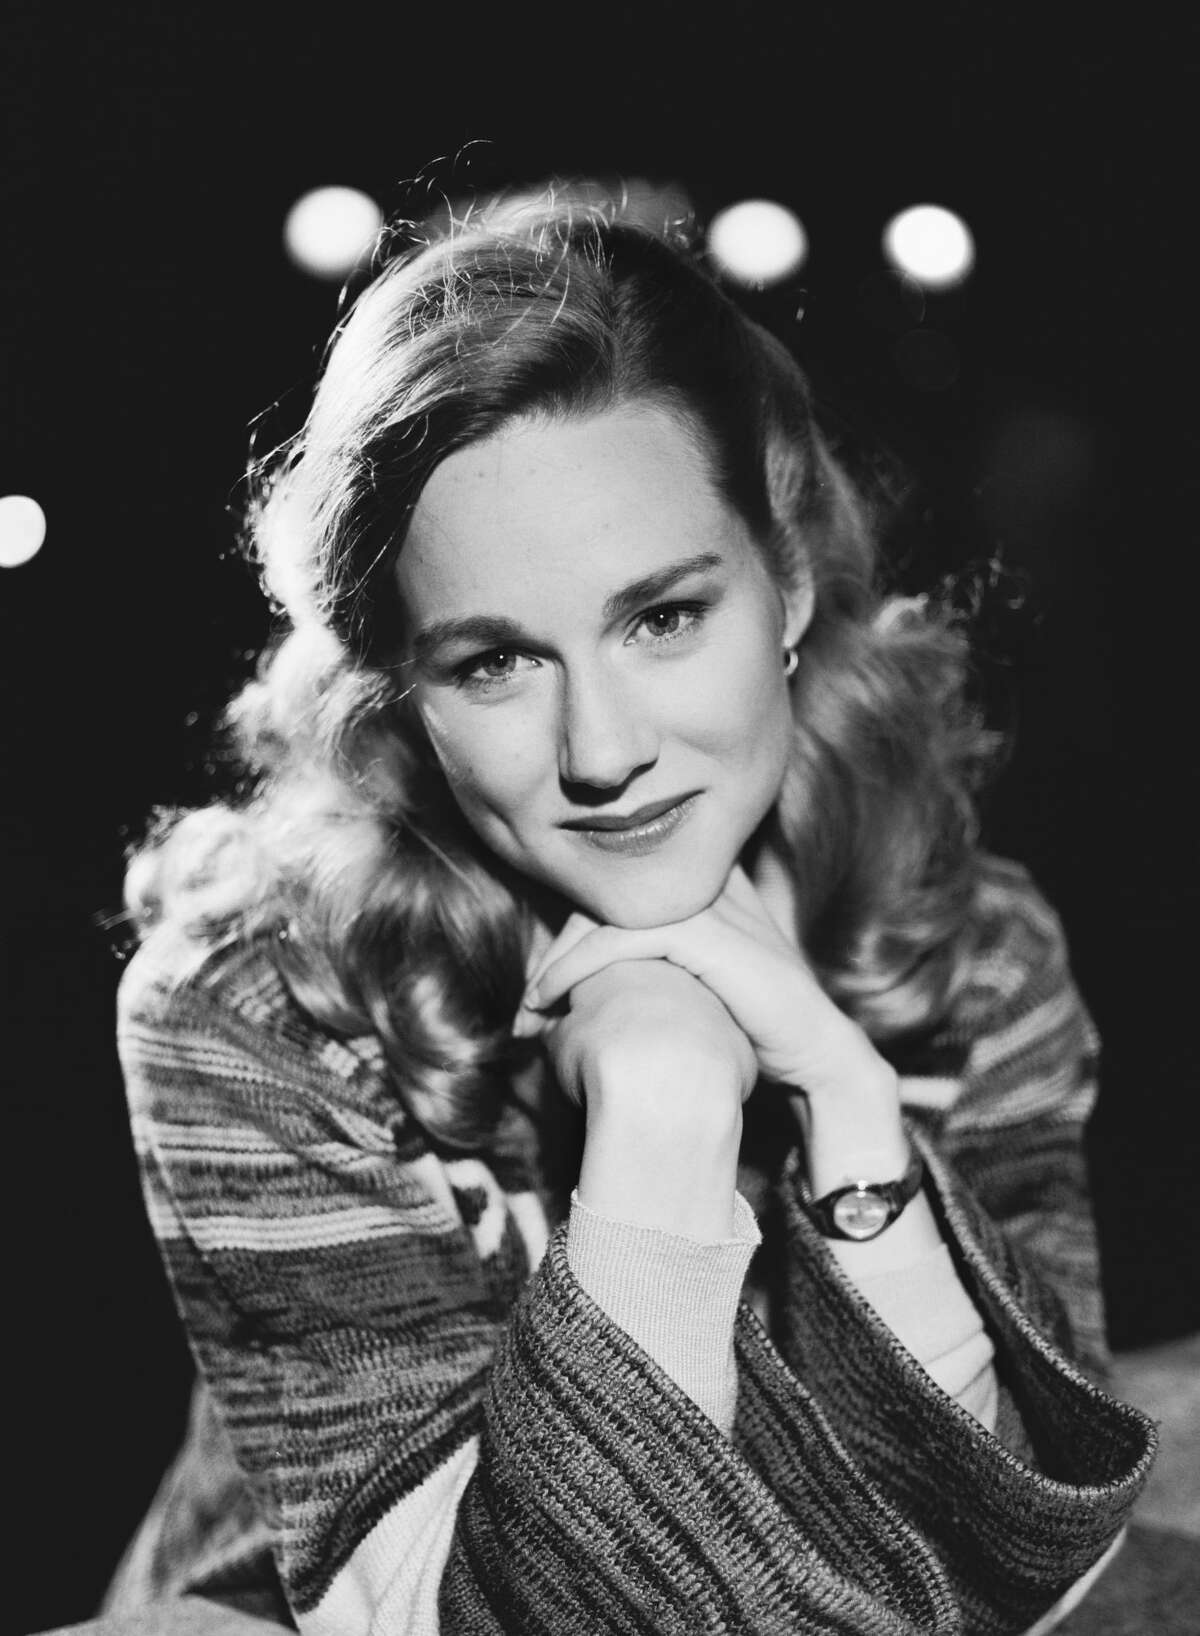 American actress Laura Linney, star of the television miniseries 'Tales of the City', 21st June 1993. The series was based on the first of the 'Tales of the City' series of novels by Armistead Maupin. (Photo by Tim Roney/Getty Images)